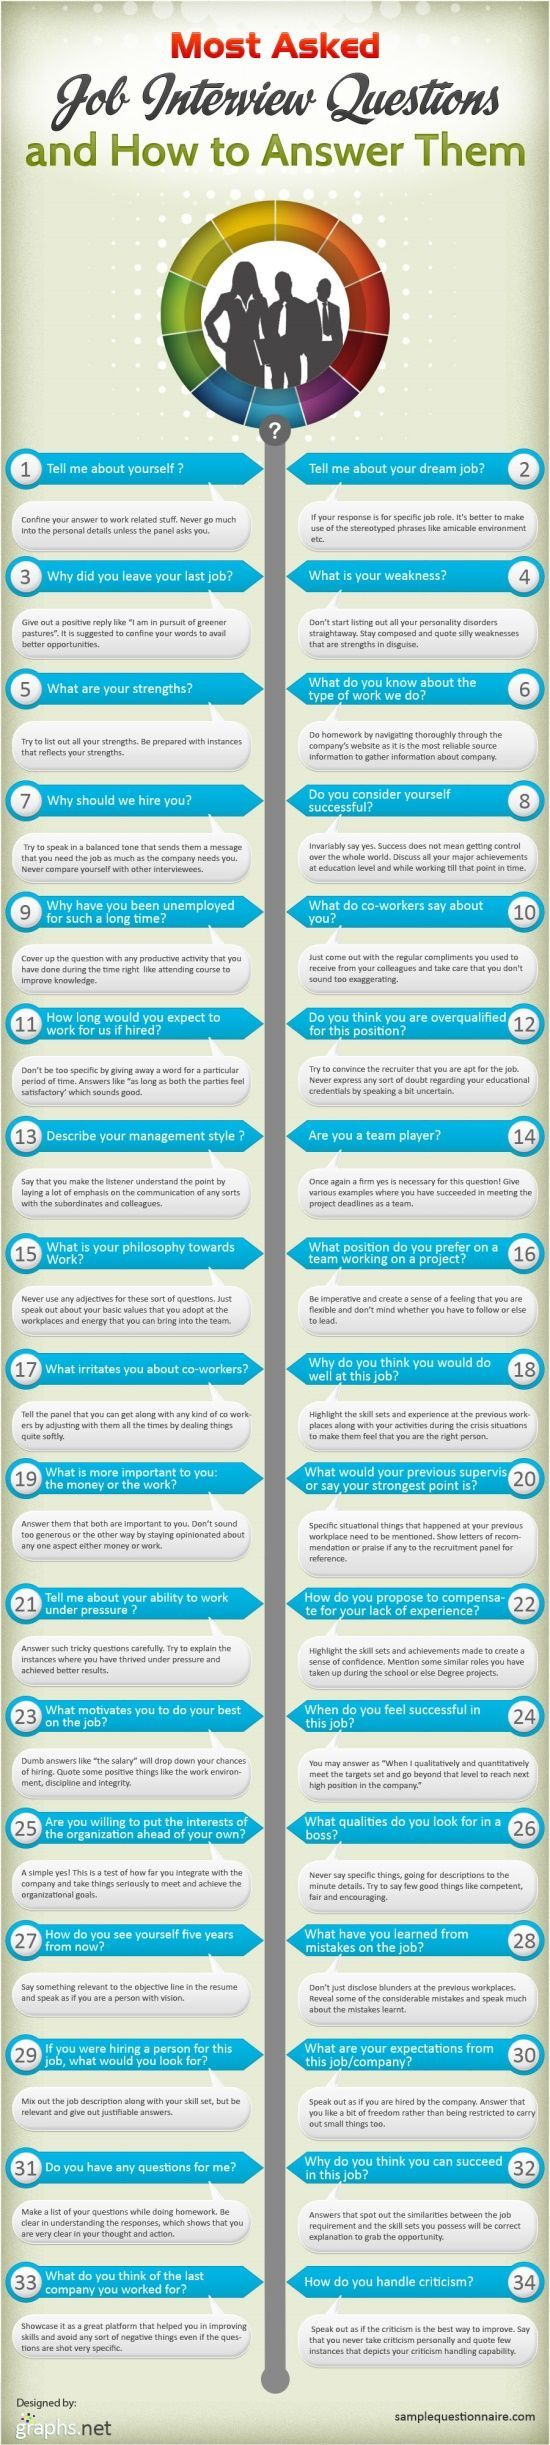 best images about job interview job search tips 34 most asked job interview questions how to answer them